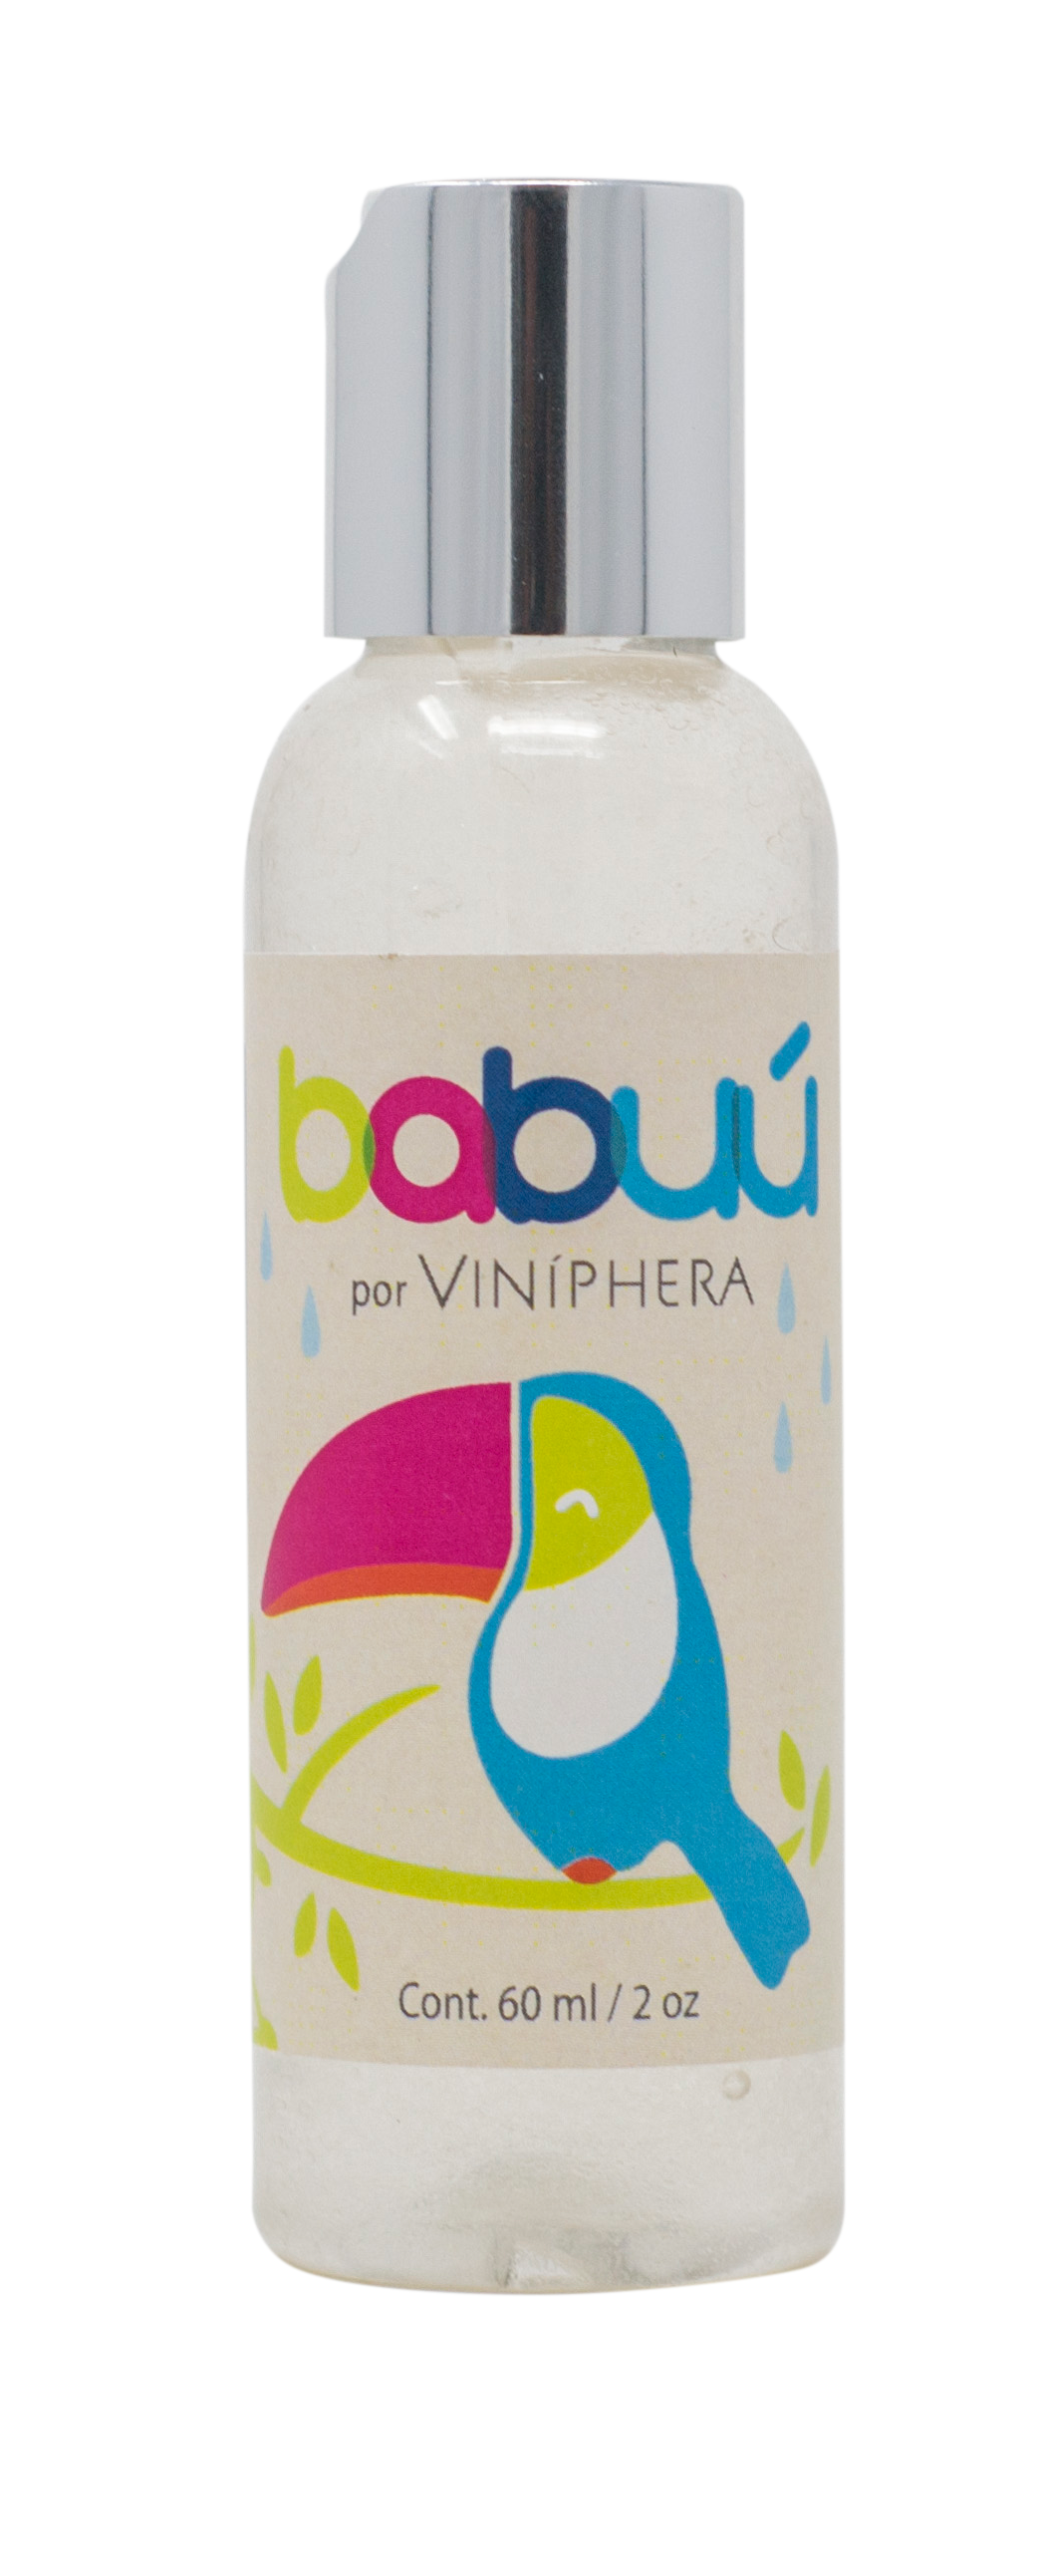 Gel Antibacterial de Babuu 60ml/2oz